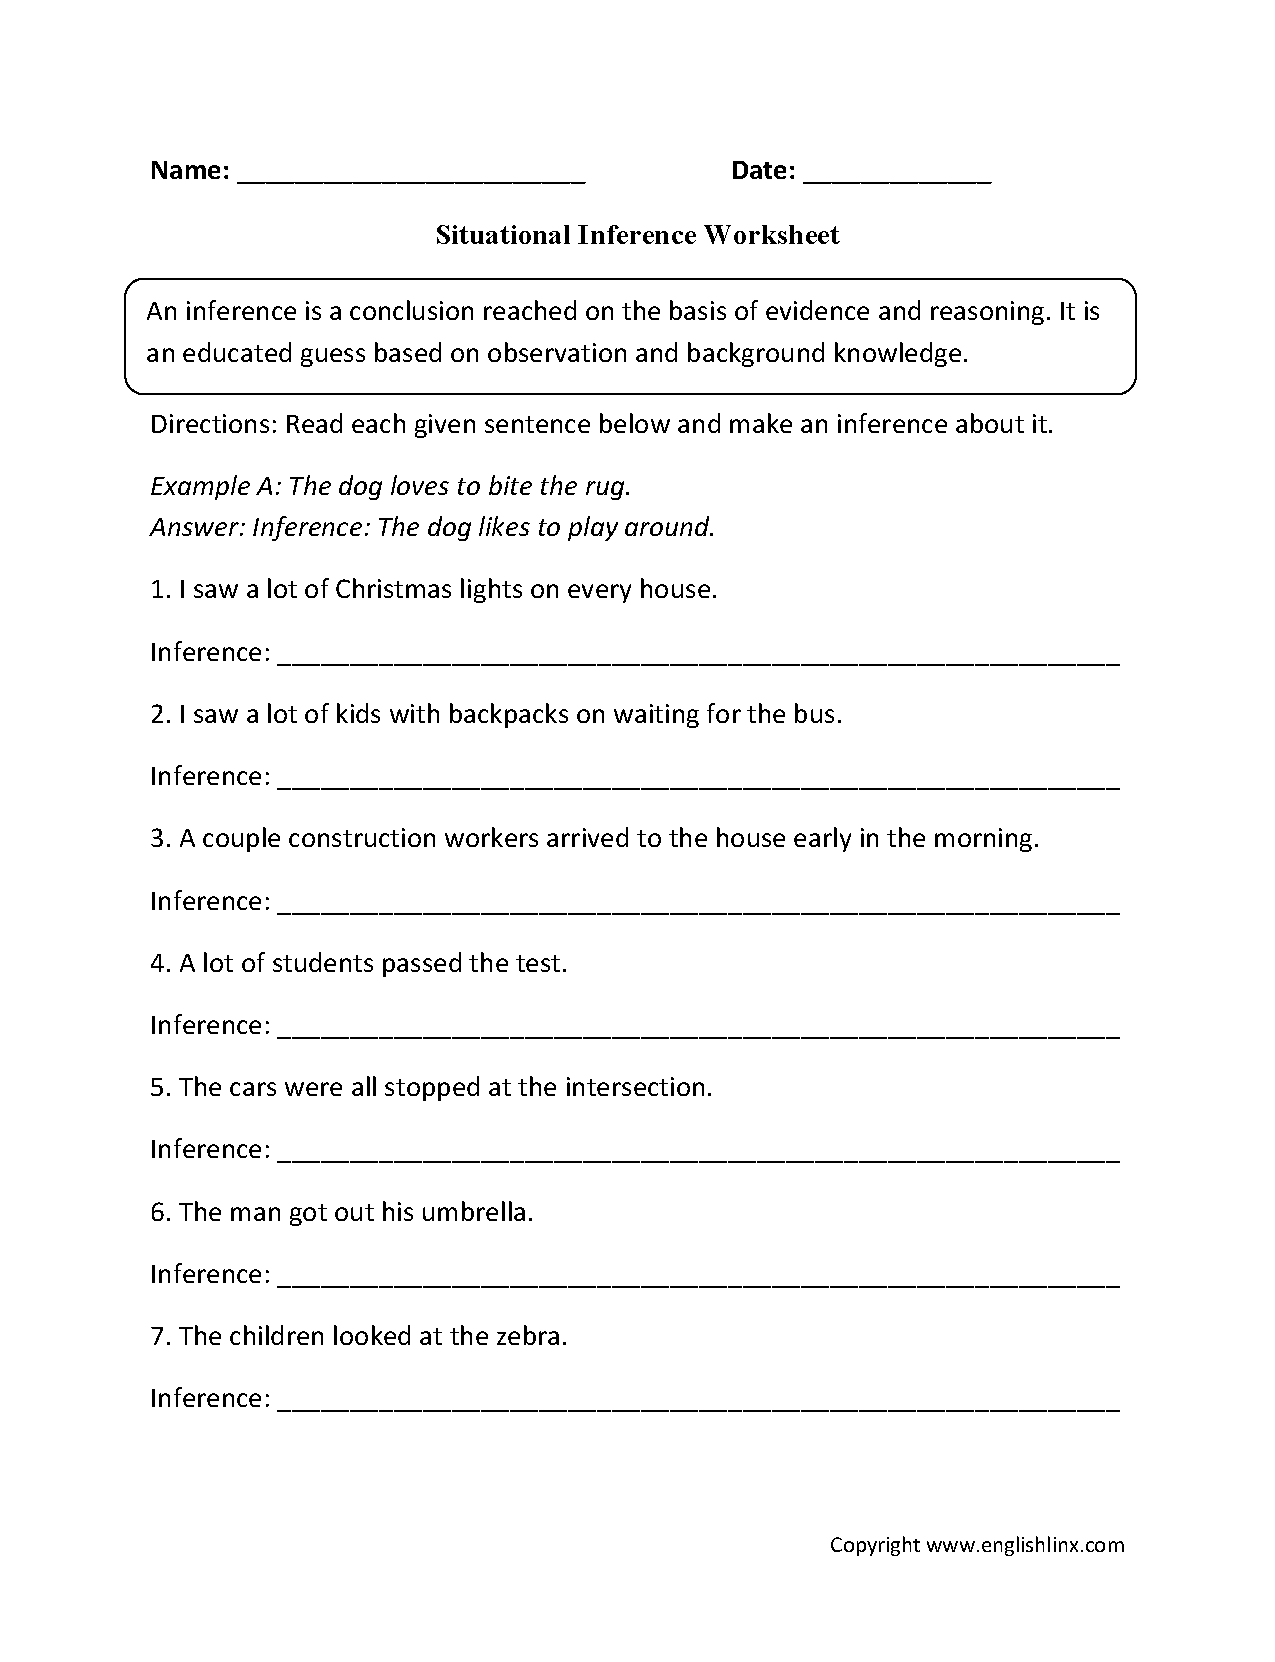 Worksheets Reading Comprehension Worksheets 8th Grade reading worksheets inference worksheets